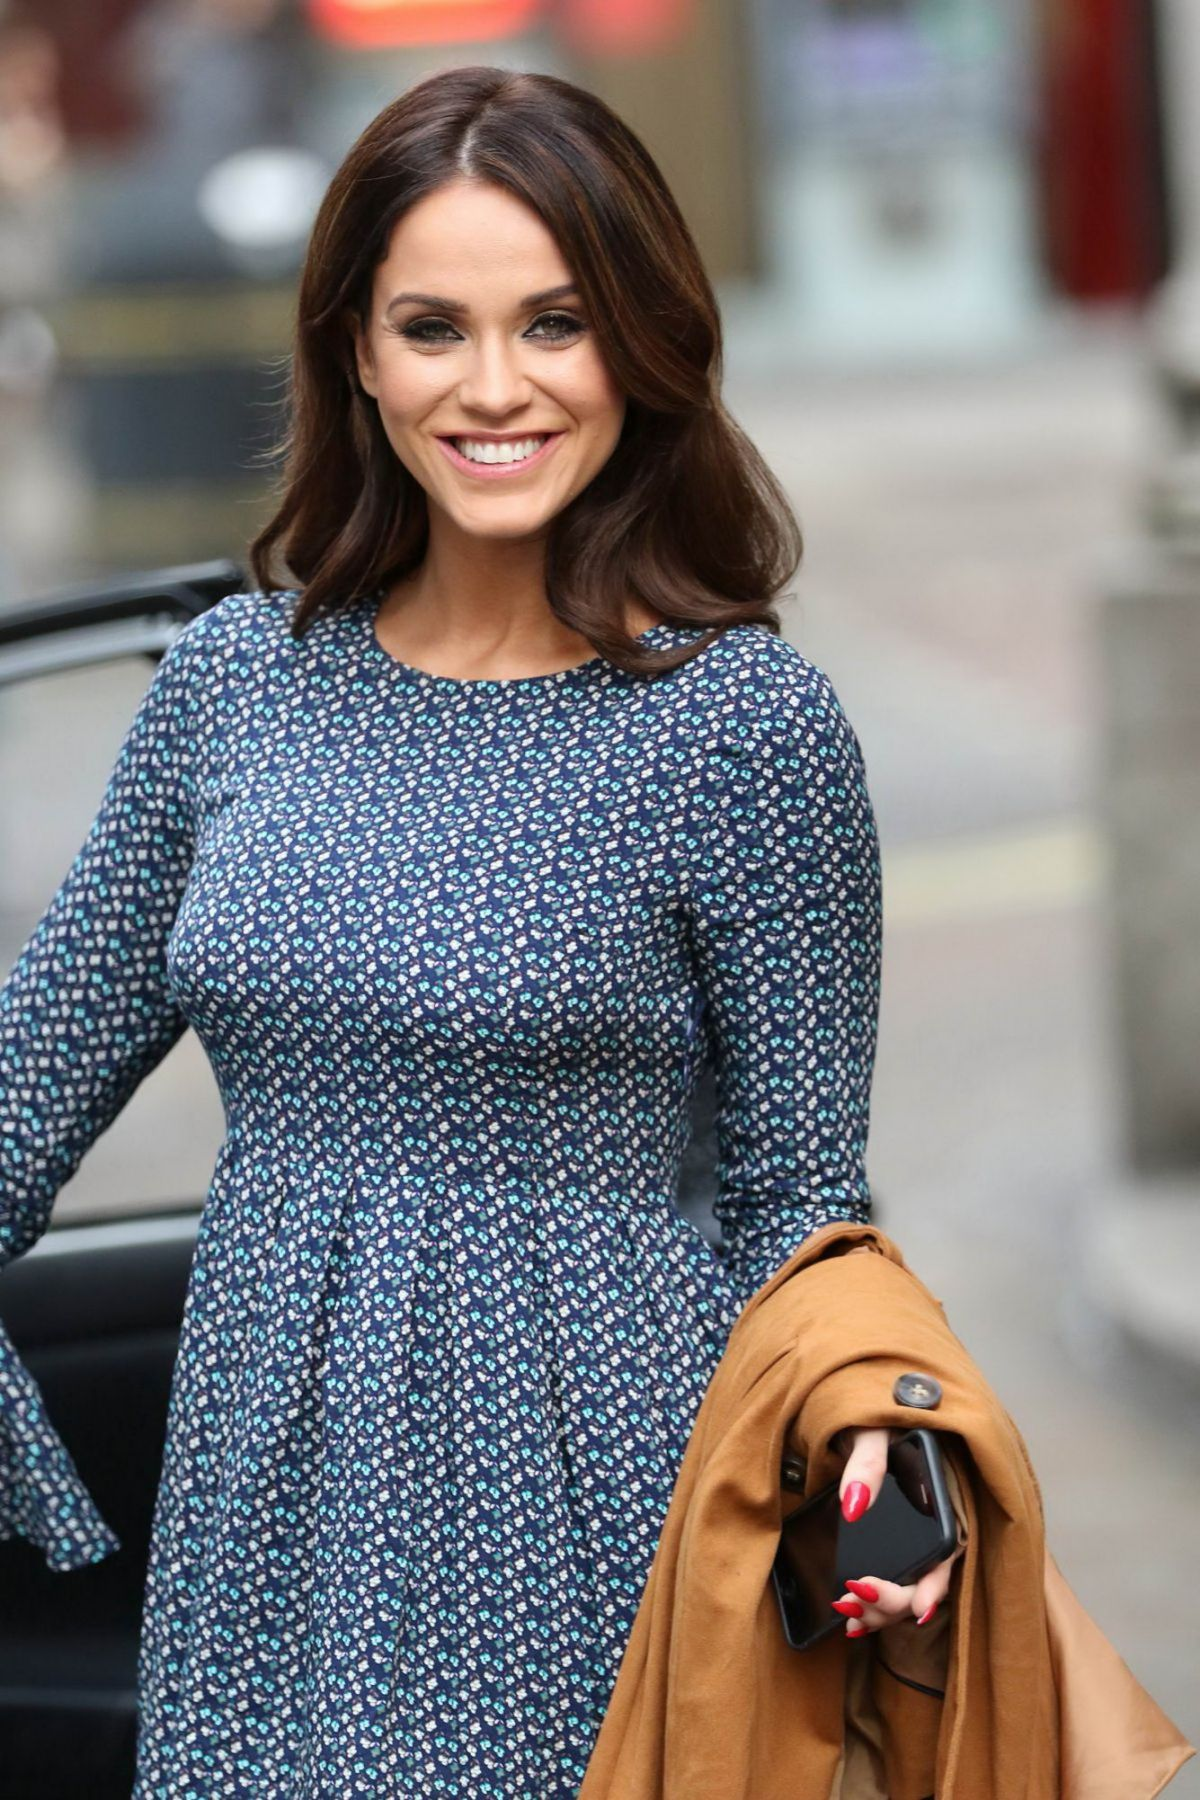 vicky pattison - photo #46